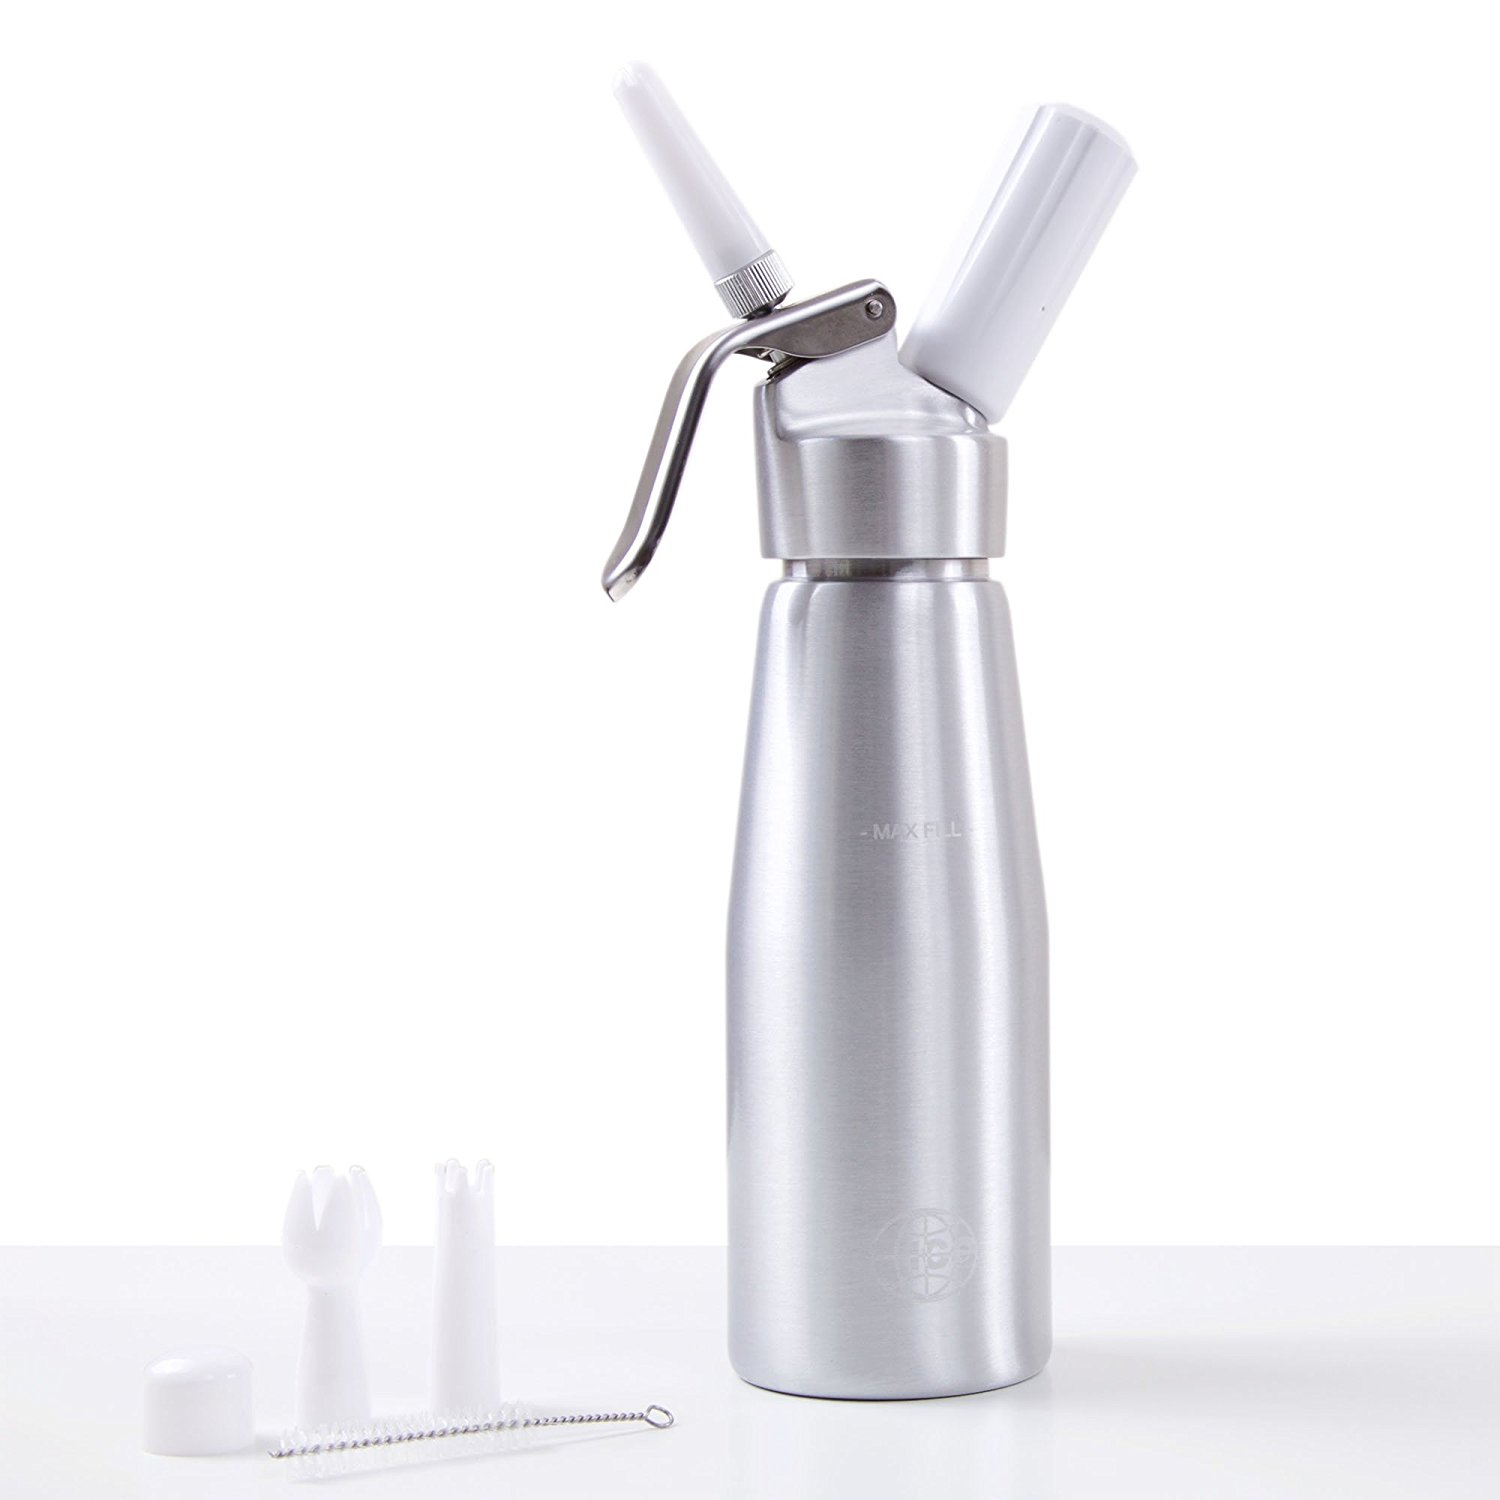 ICO Pro Whipped Cream Dispenser